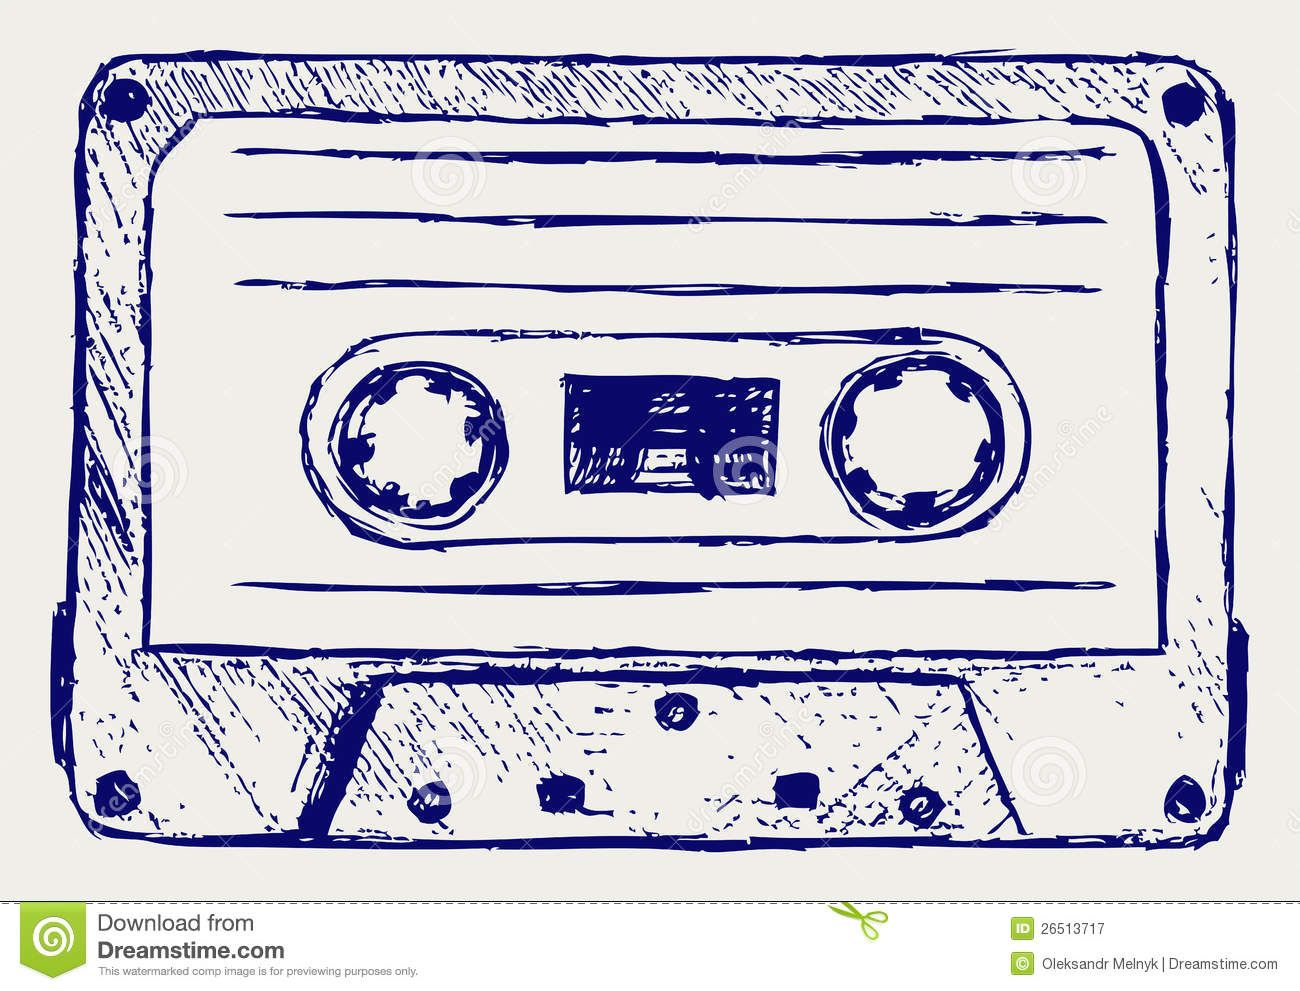 1300x991 Images For Gt Cassette Tape Colorful Drawing Anniv Tattoo